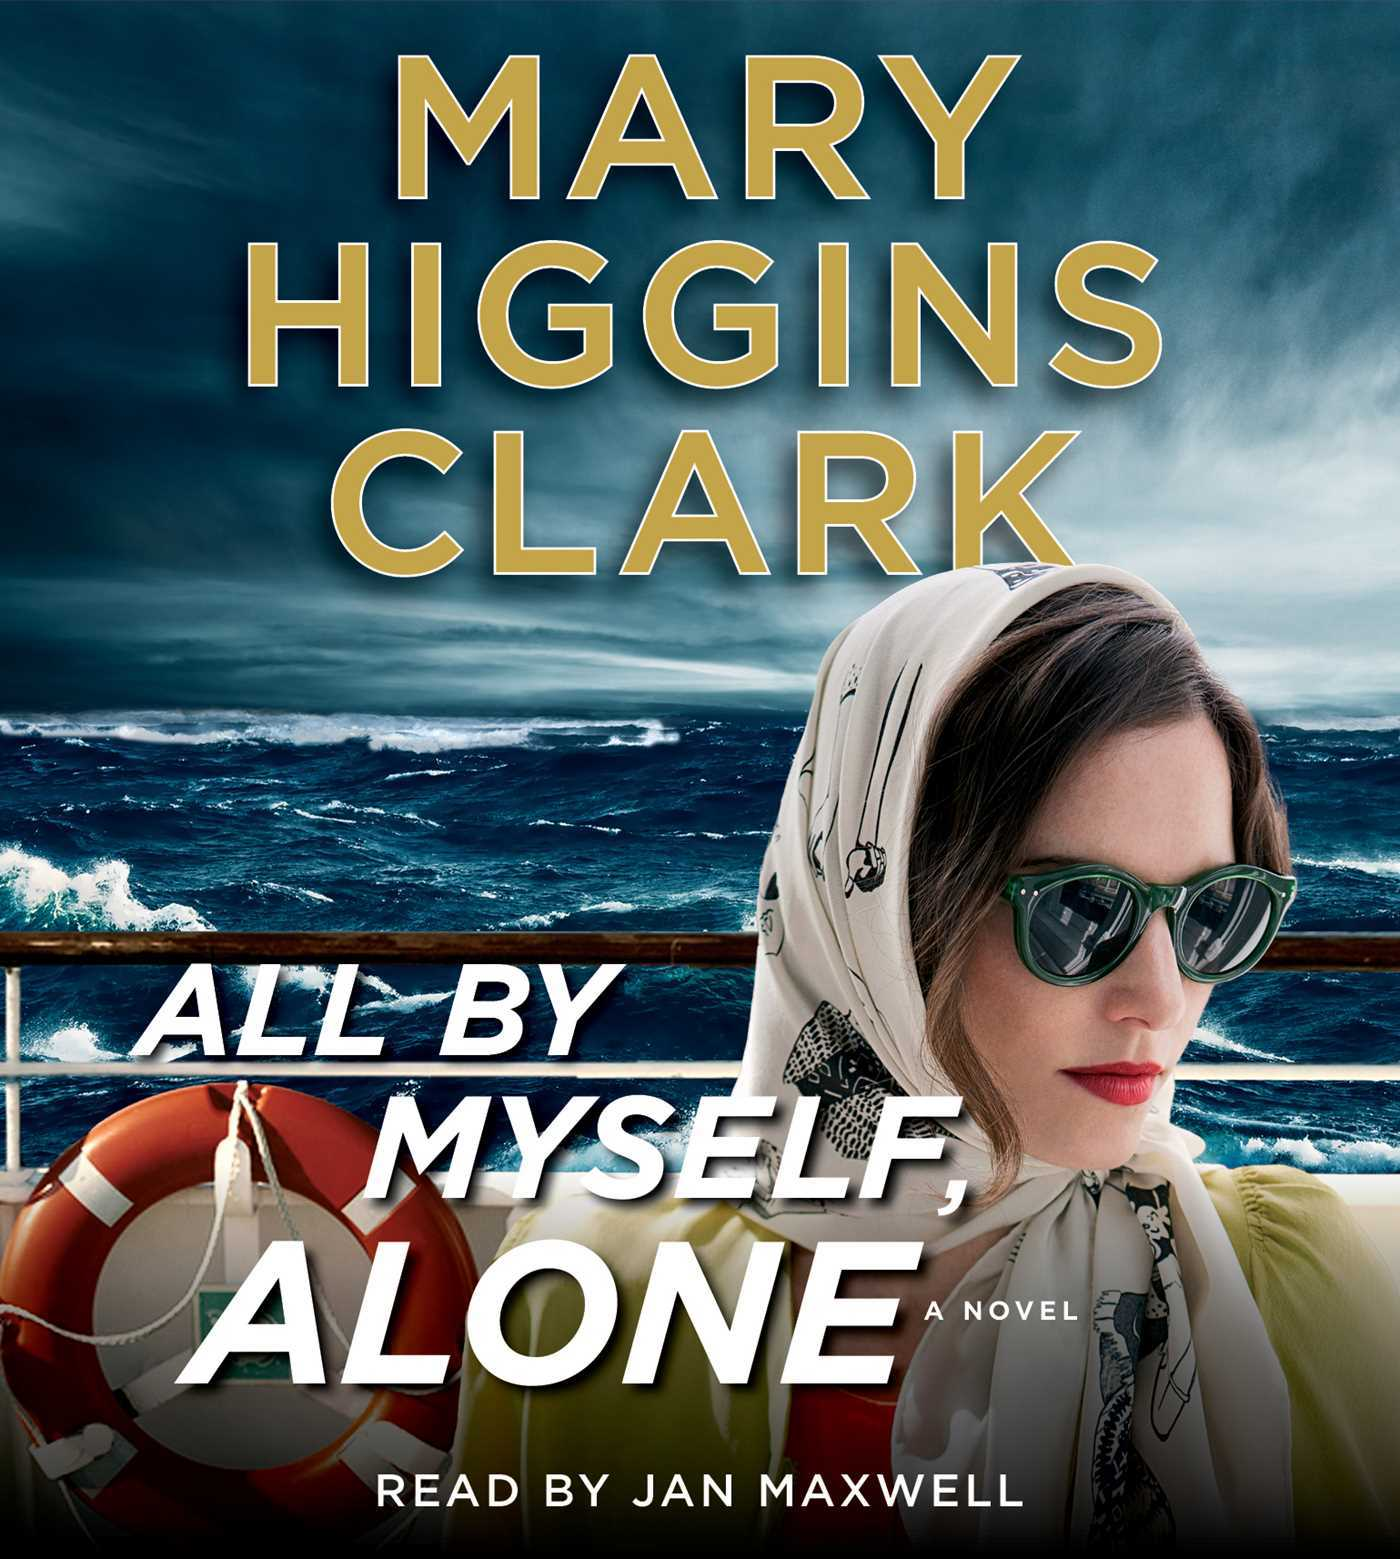 All by Myself, Alone - Mary Higgins Clark